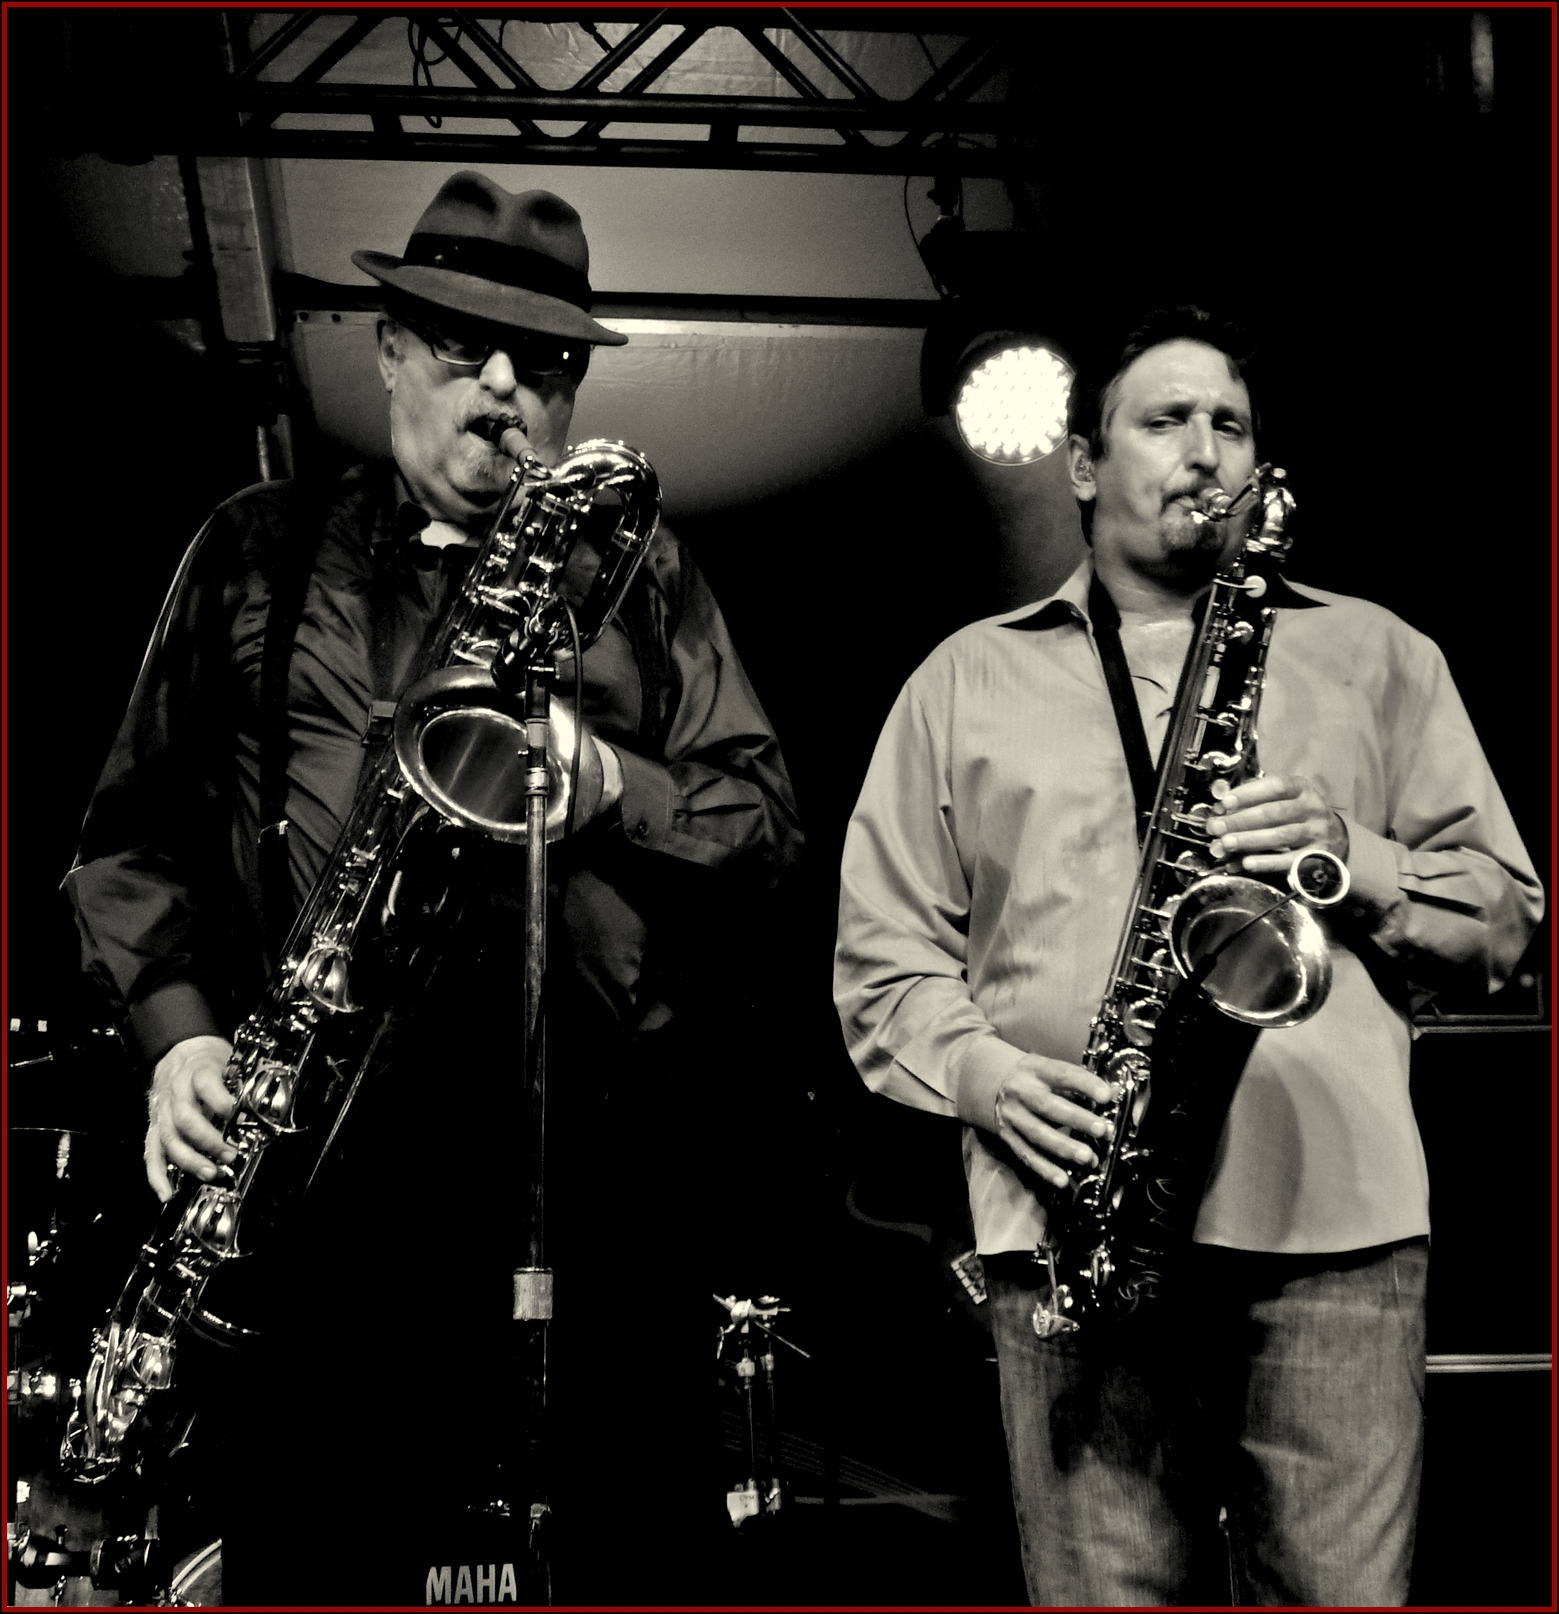 The Bigger the Man, the Bigger the Sax (Tower of Power)